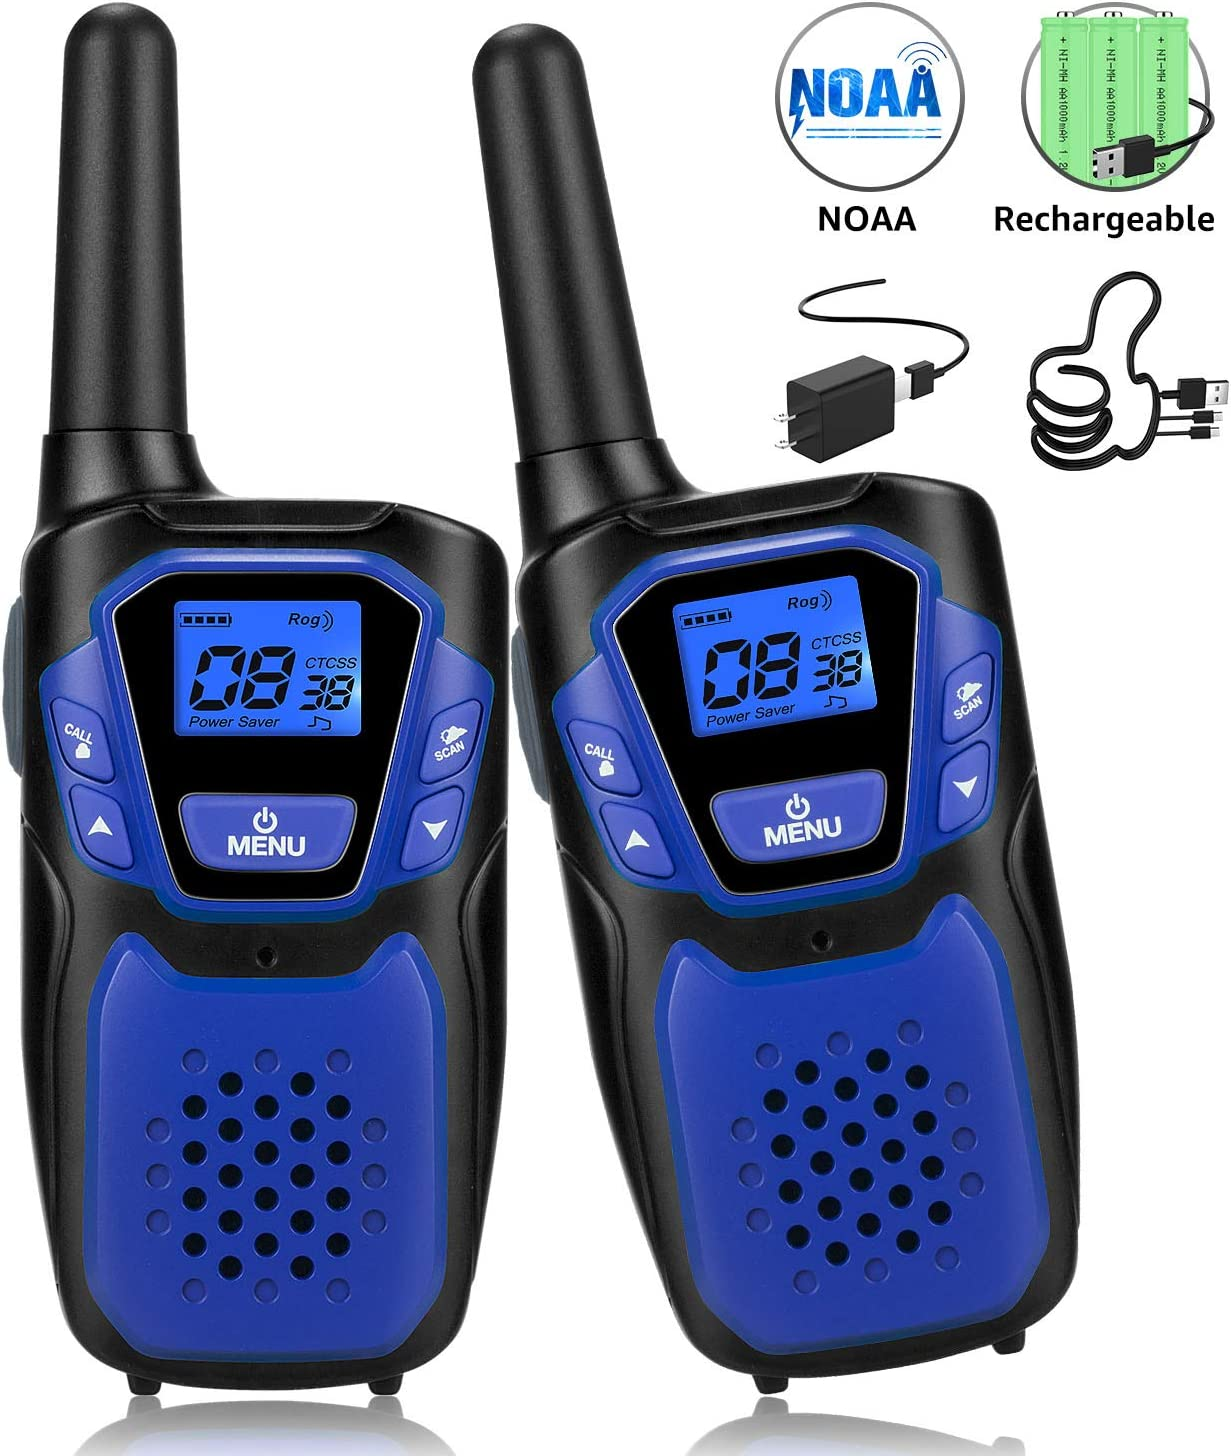 Walkie Talkies for Adult, Easy to Use Rechargeable Long Range Walky Talky Handheld Two Way Radio with NOAA for Hiking Camping